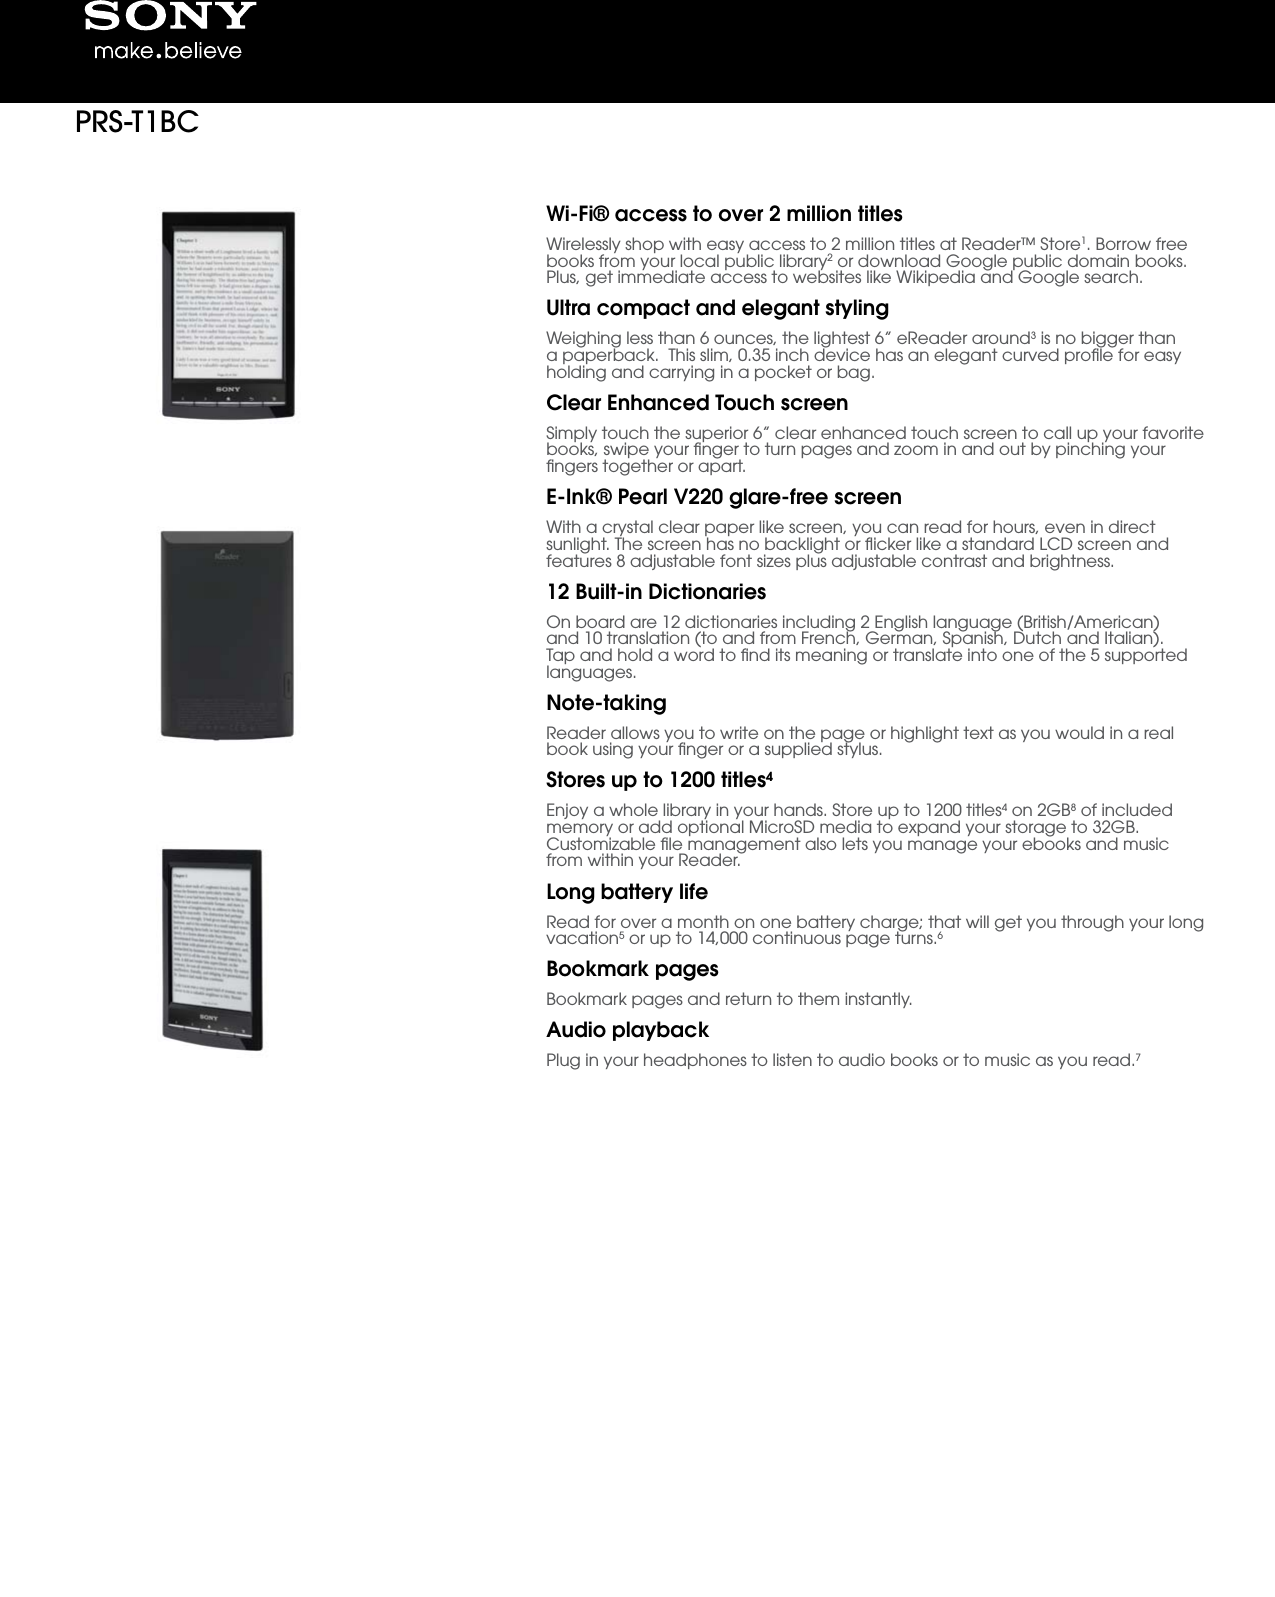 Sony prs t1 user manual marketing specifications prs t1bc prst1bc mksp publicscrutiny Images